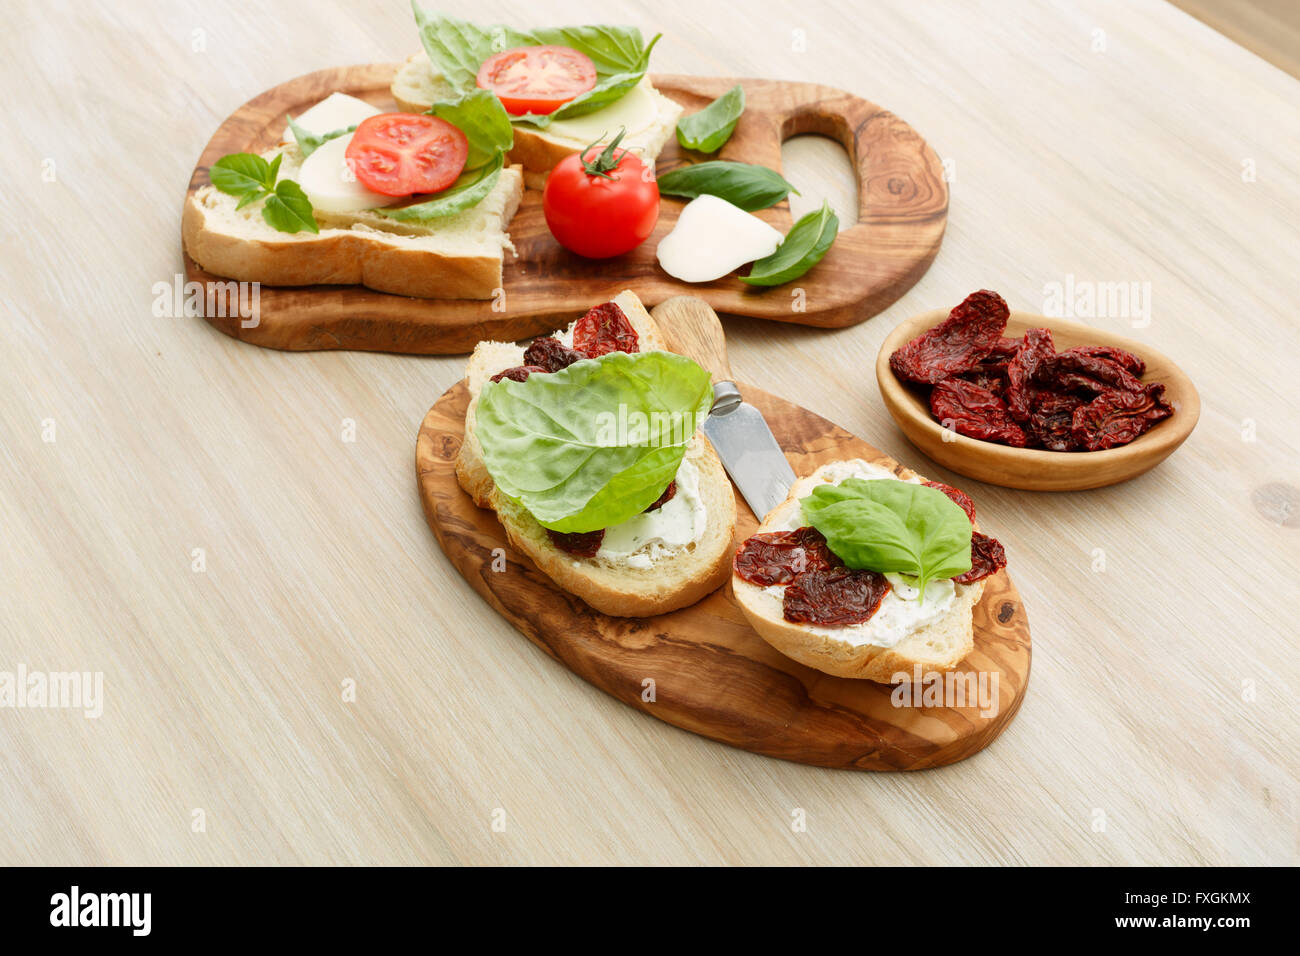 Open-faced sandwiches made of ciabatta, sun dried tomatoes, creamy cheese and lettuce leaf basil. Antipasti - Stock Image